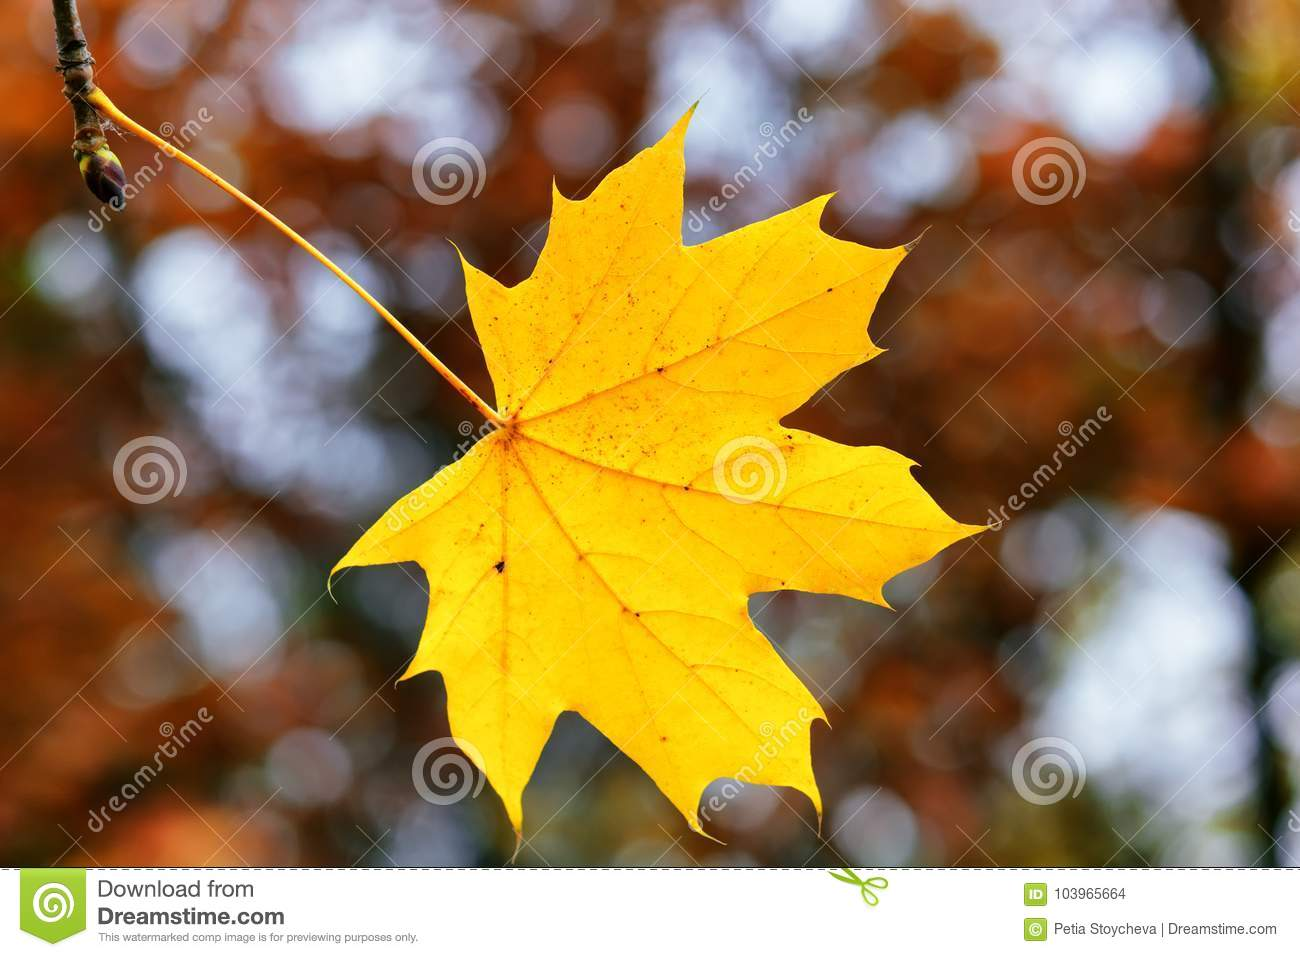 yellow maple leaf on a blurred autumn trees background fall season